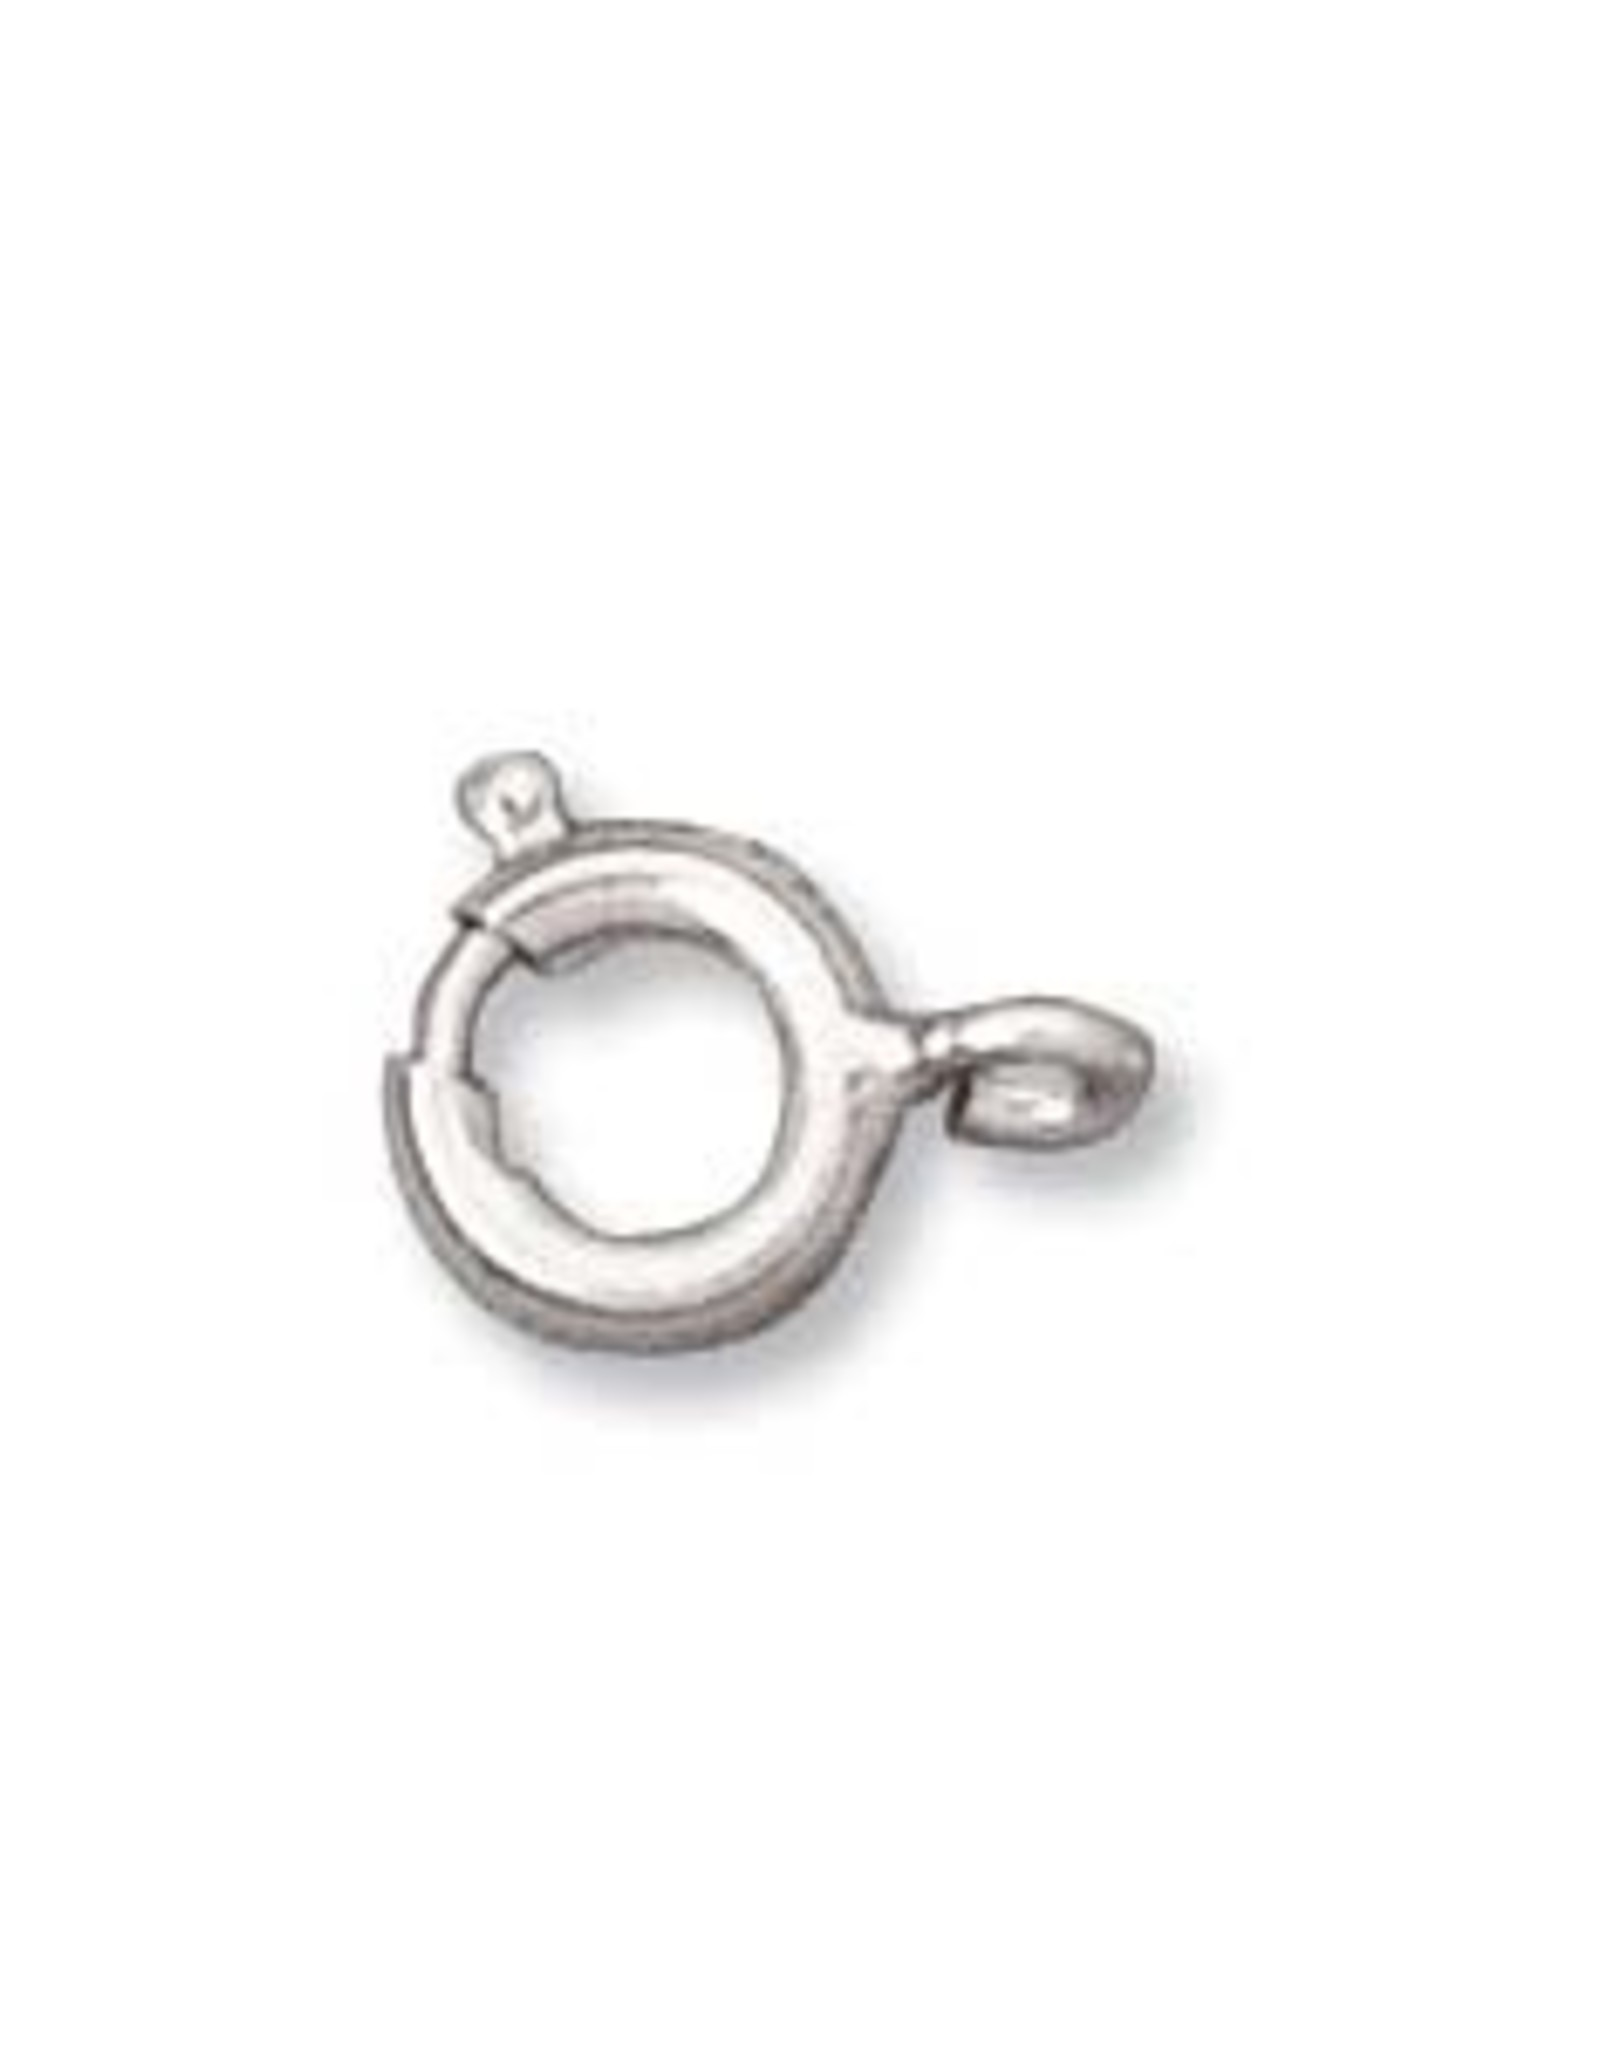 6mm Spring Ring Clasp, Silver Plated Qty 12